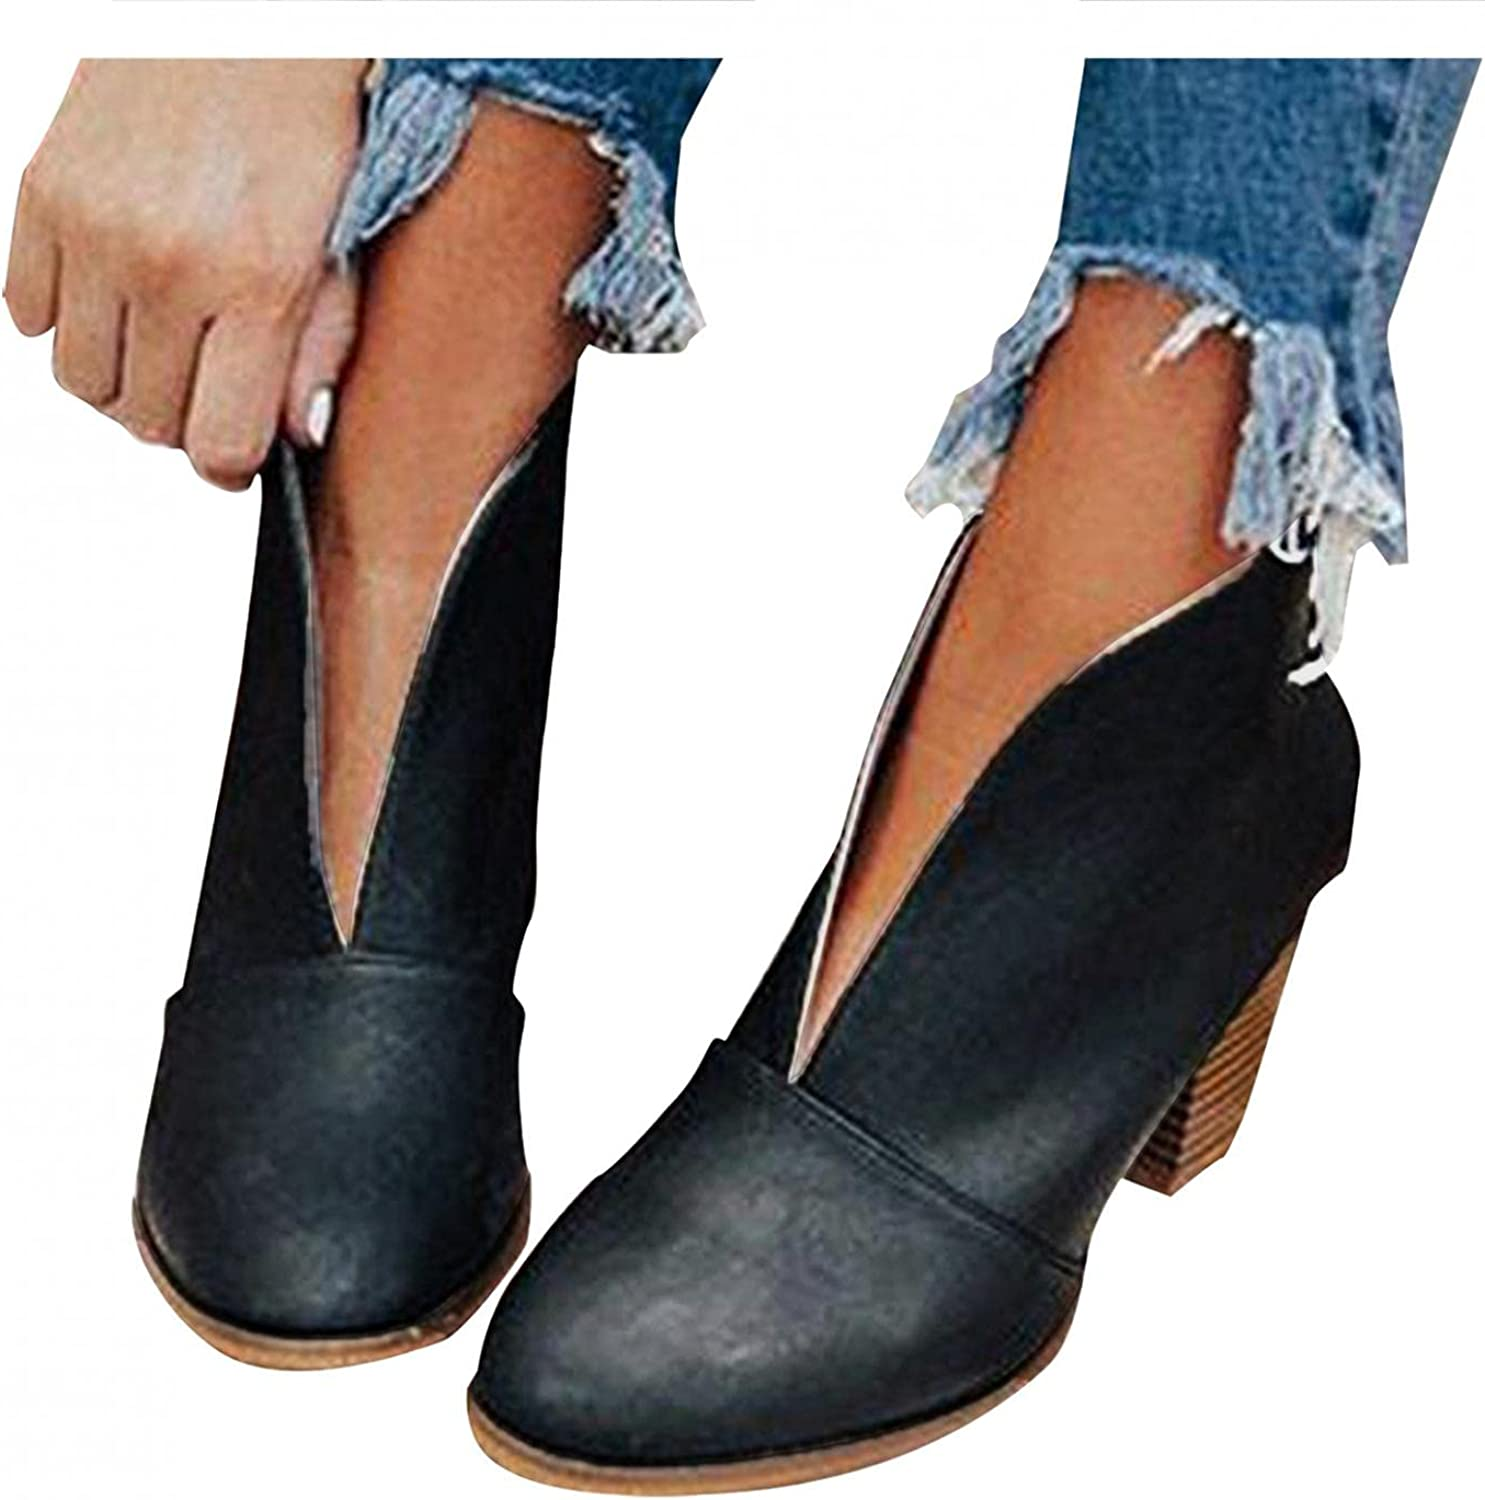 Zieglen Boots for Women Slip On Hiking 5 ☆ very Milwaukee Mall popular Out Bo Hollow Ankle